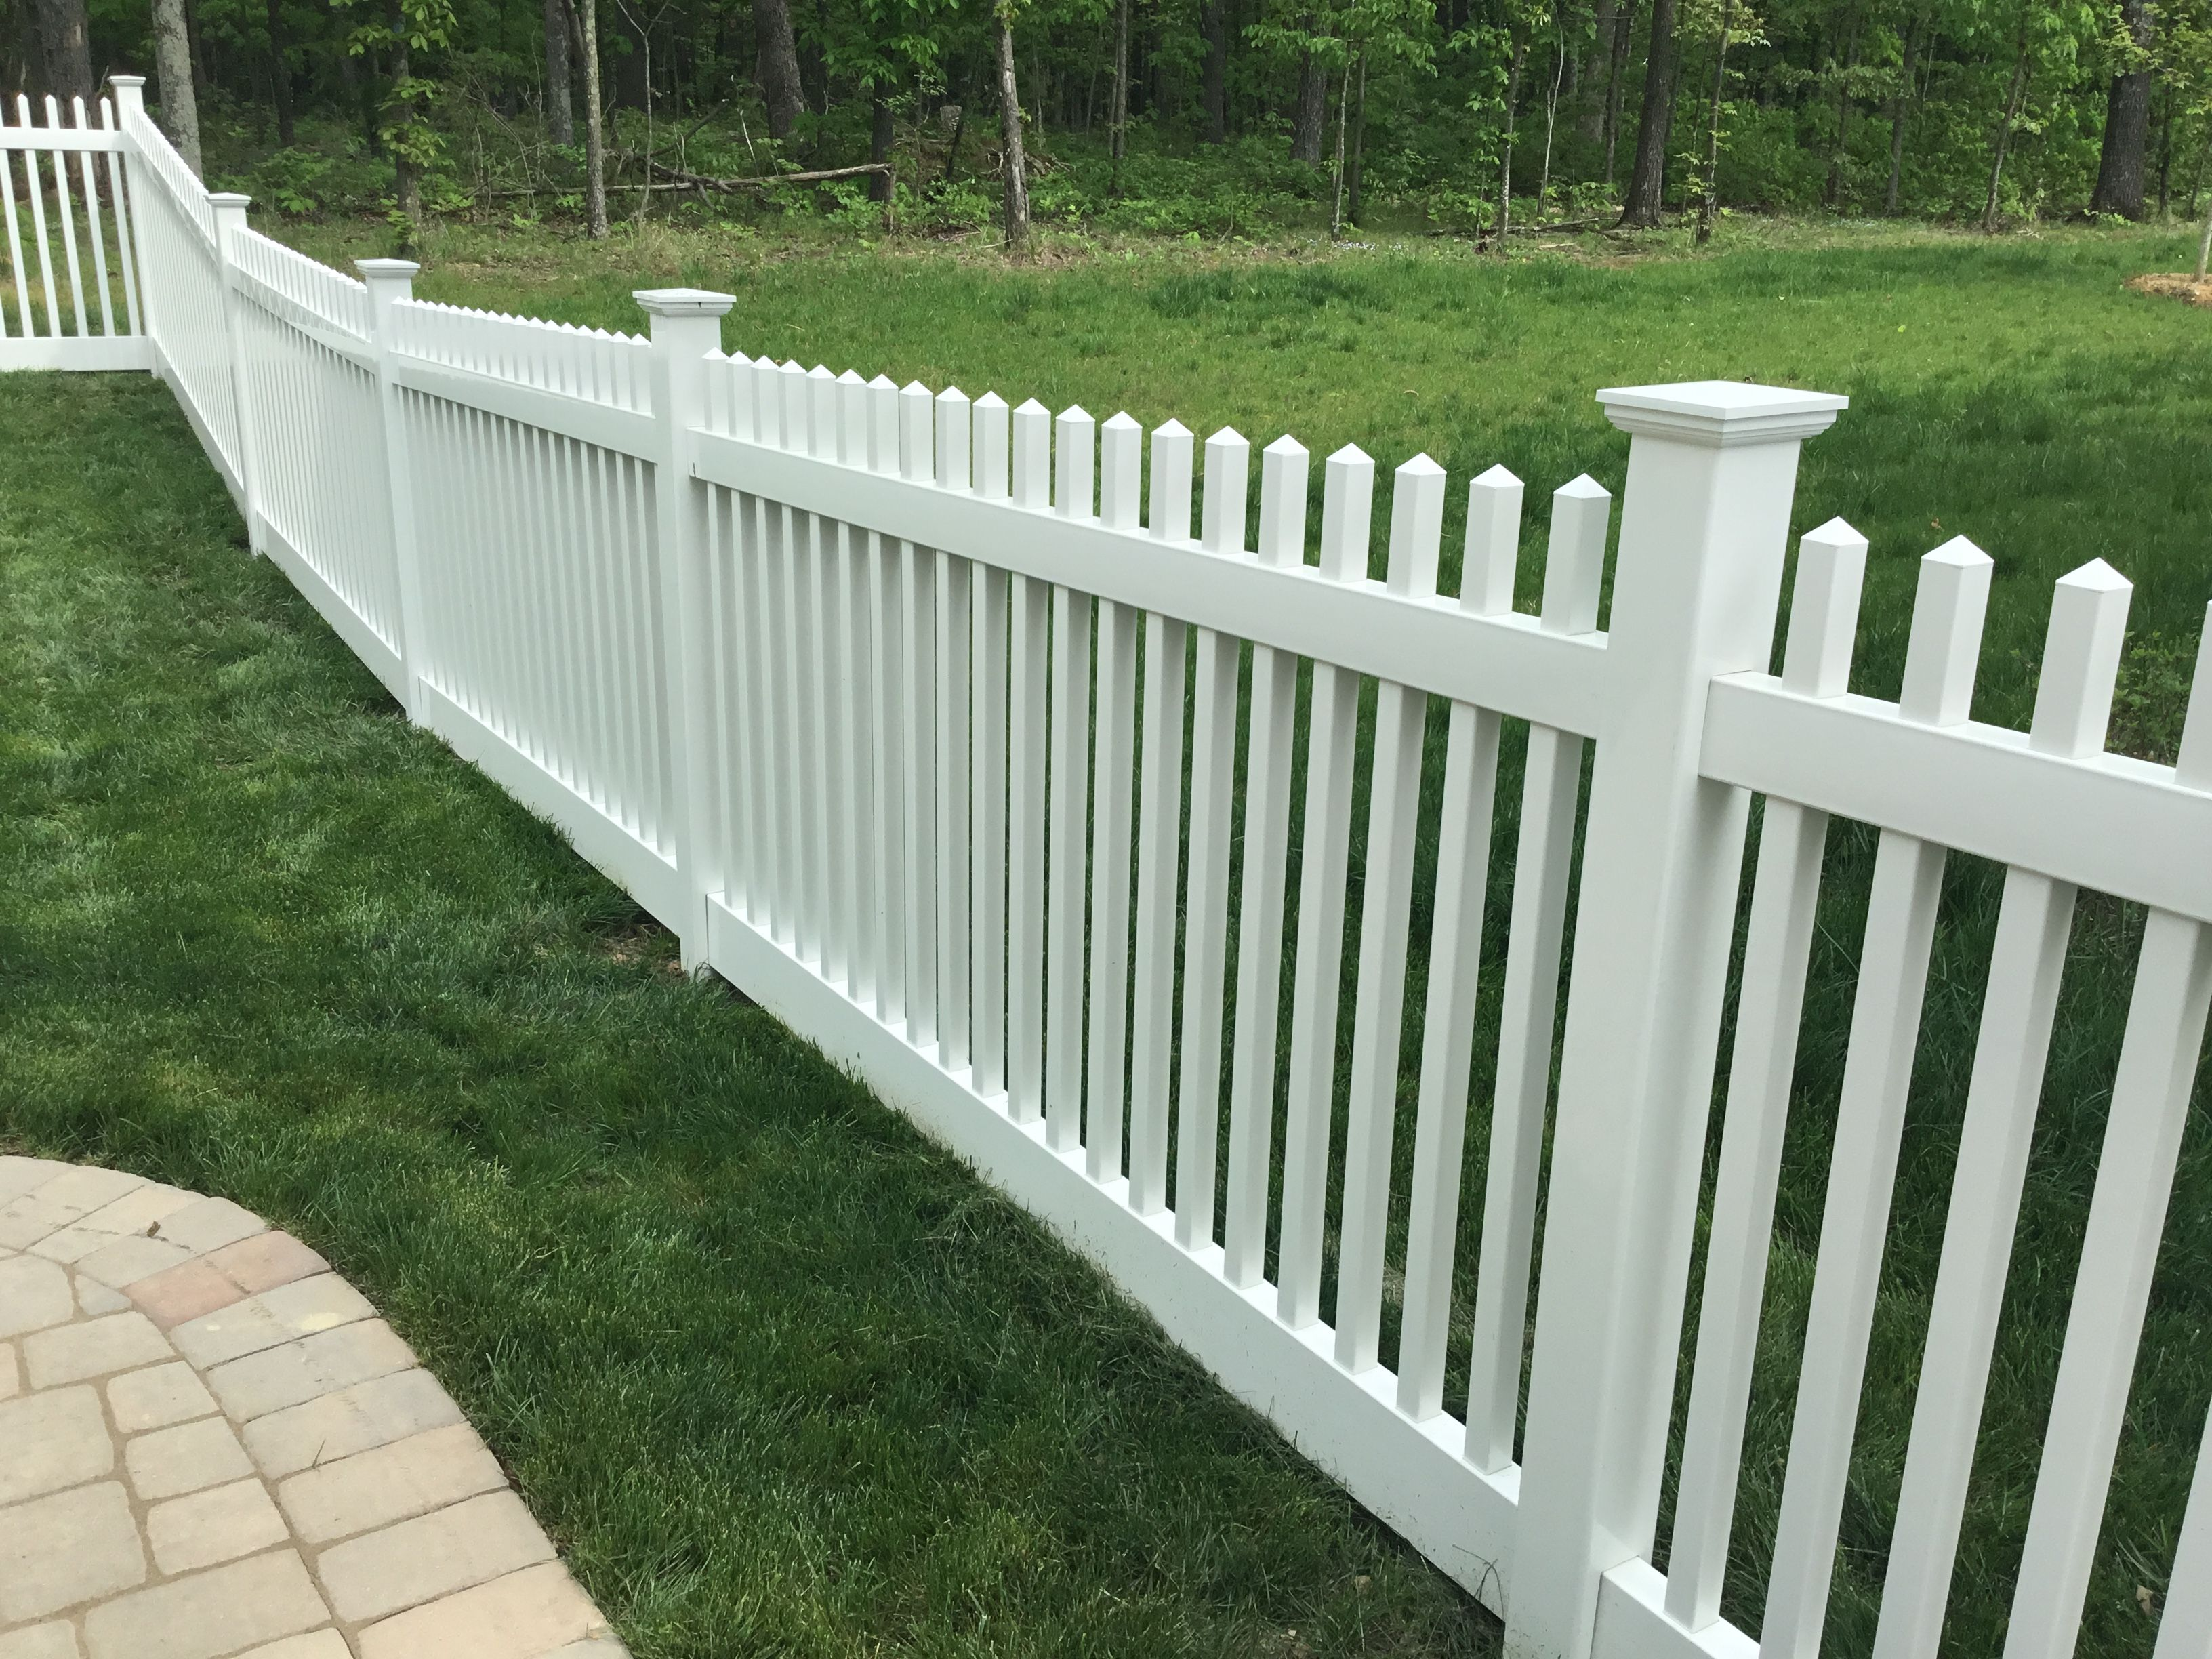 vinyl fence designs. Vinyl Picket Fence White Design Ideas Beautiful Designs